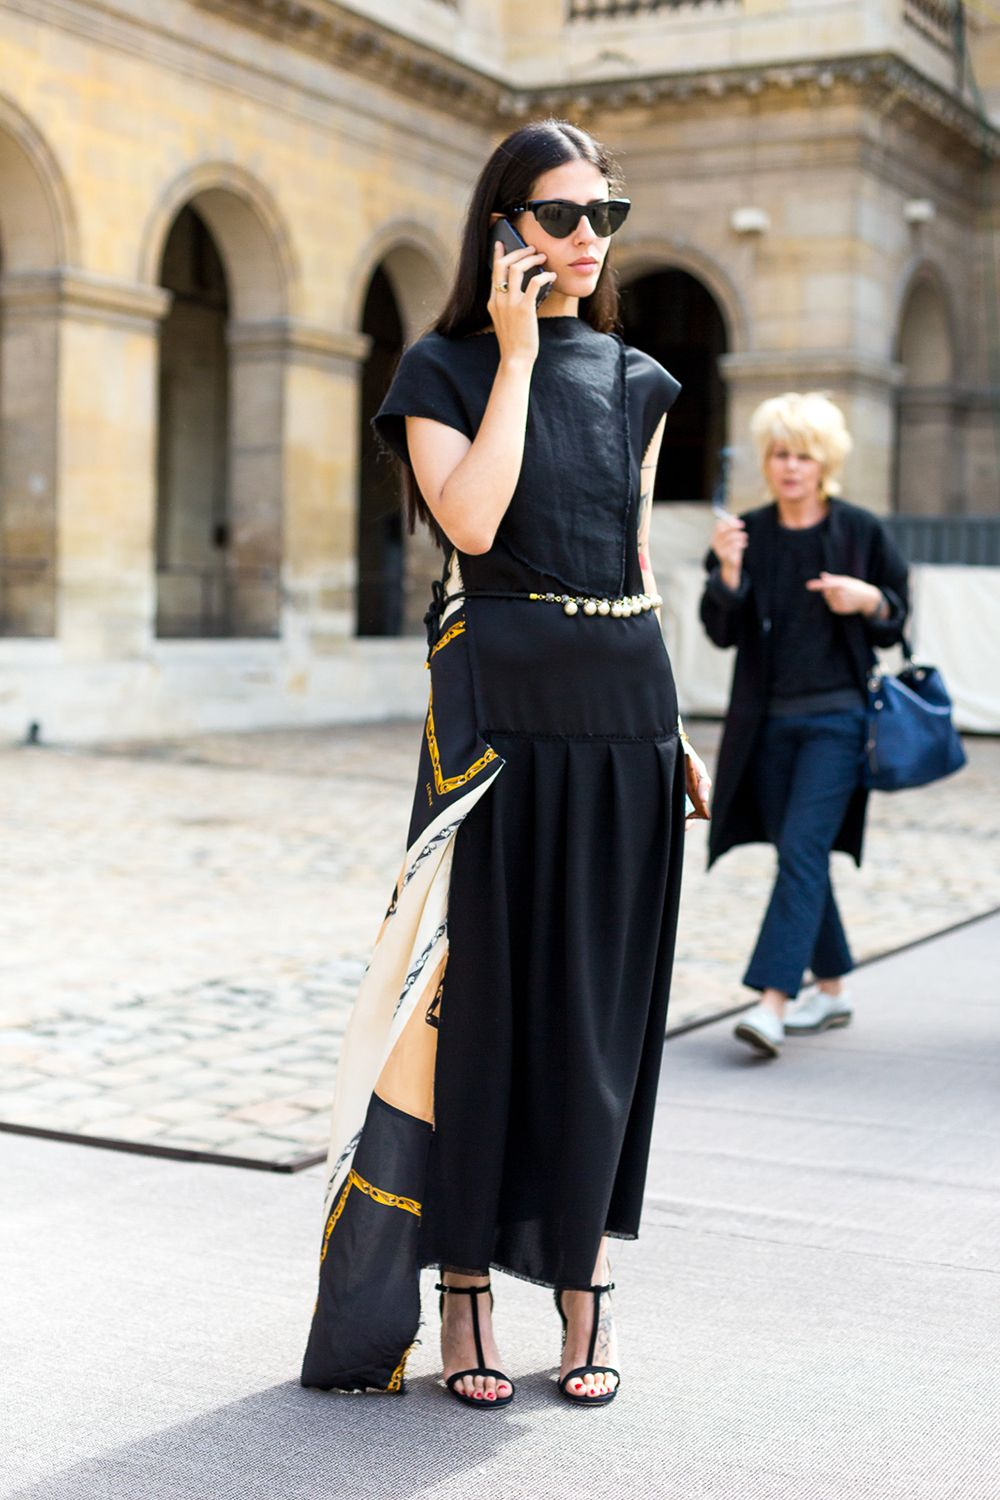 fe9e59e7d822 Diego Zuko is in the City of Light for the haute couture collections to  bring you all the best street style moments.